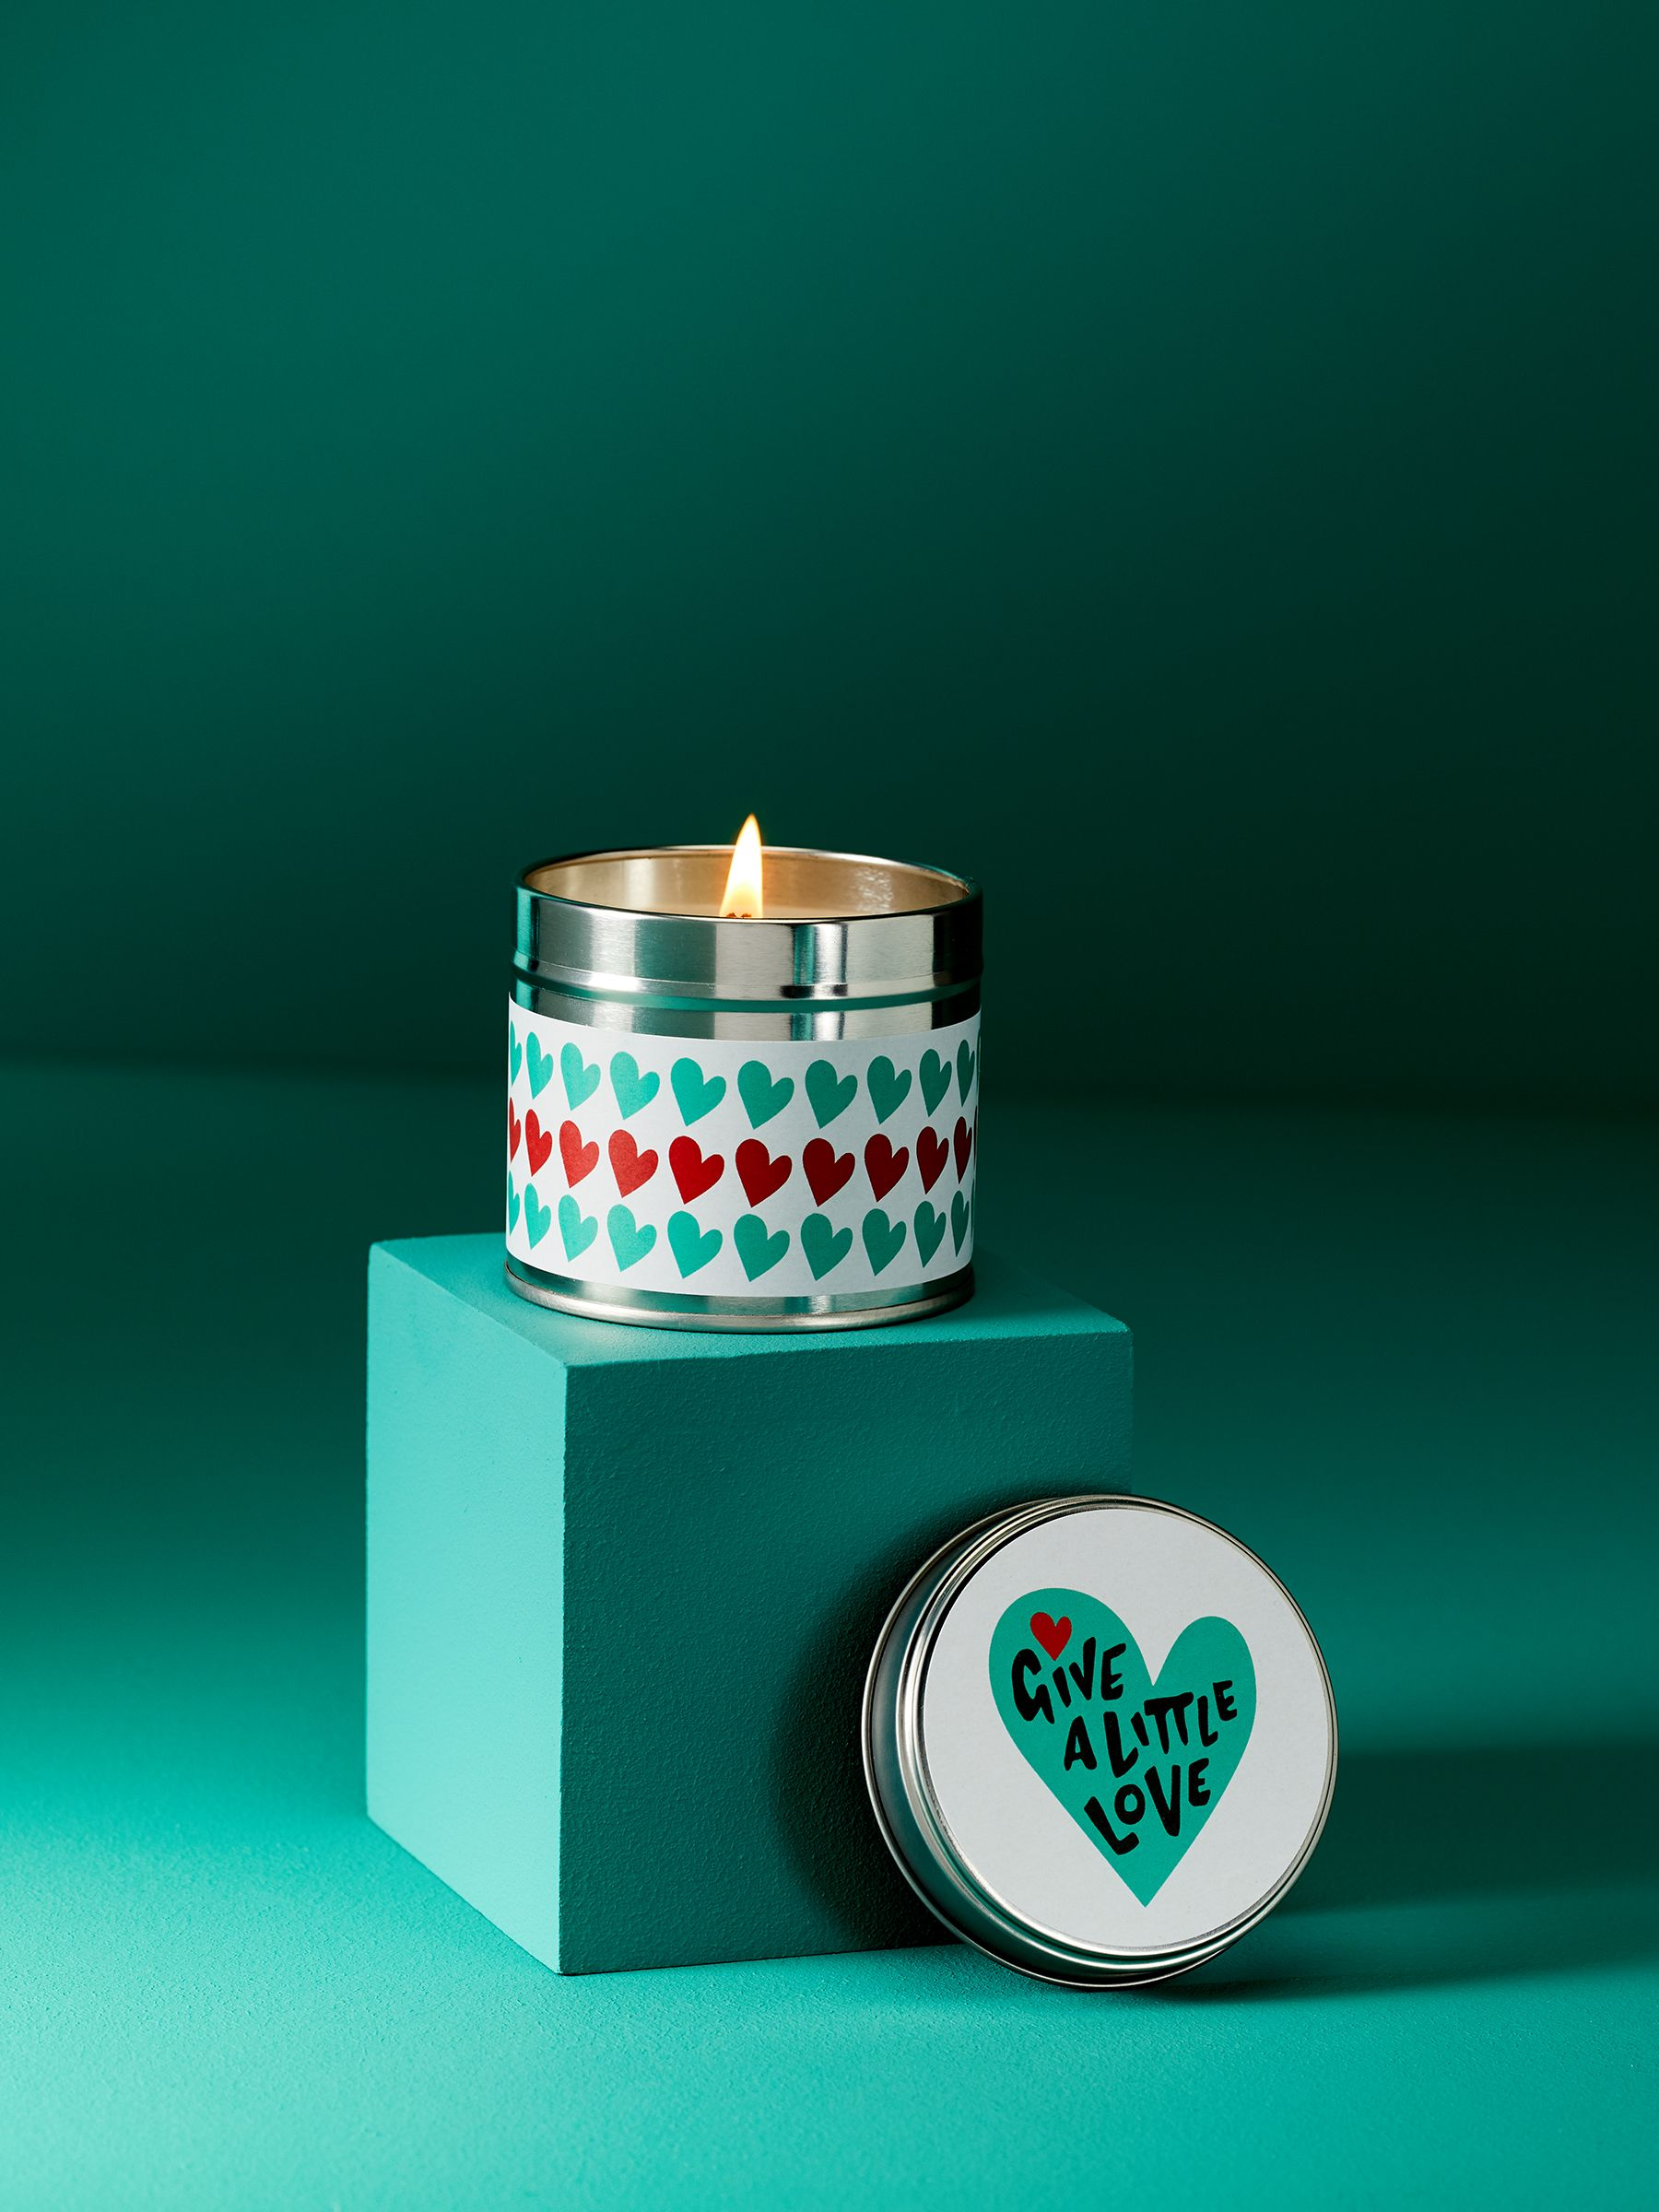 Give a Little Love Candle